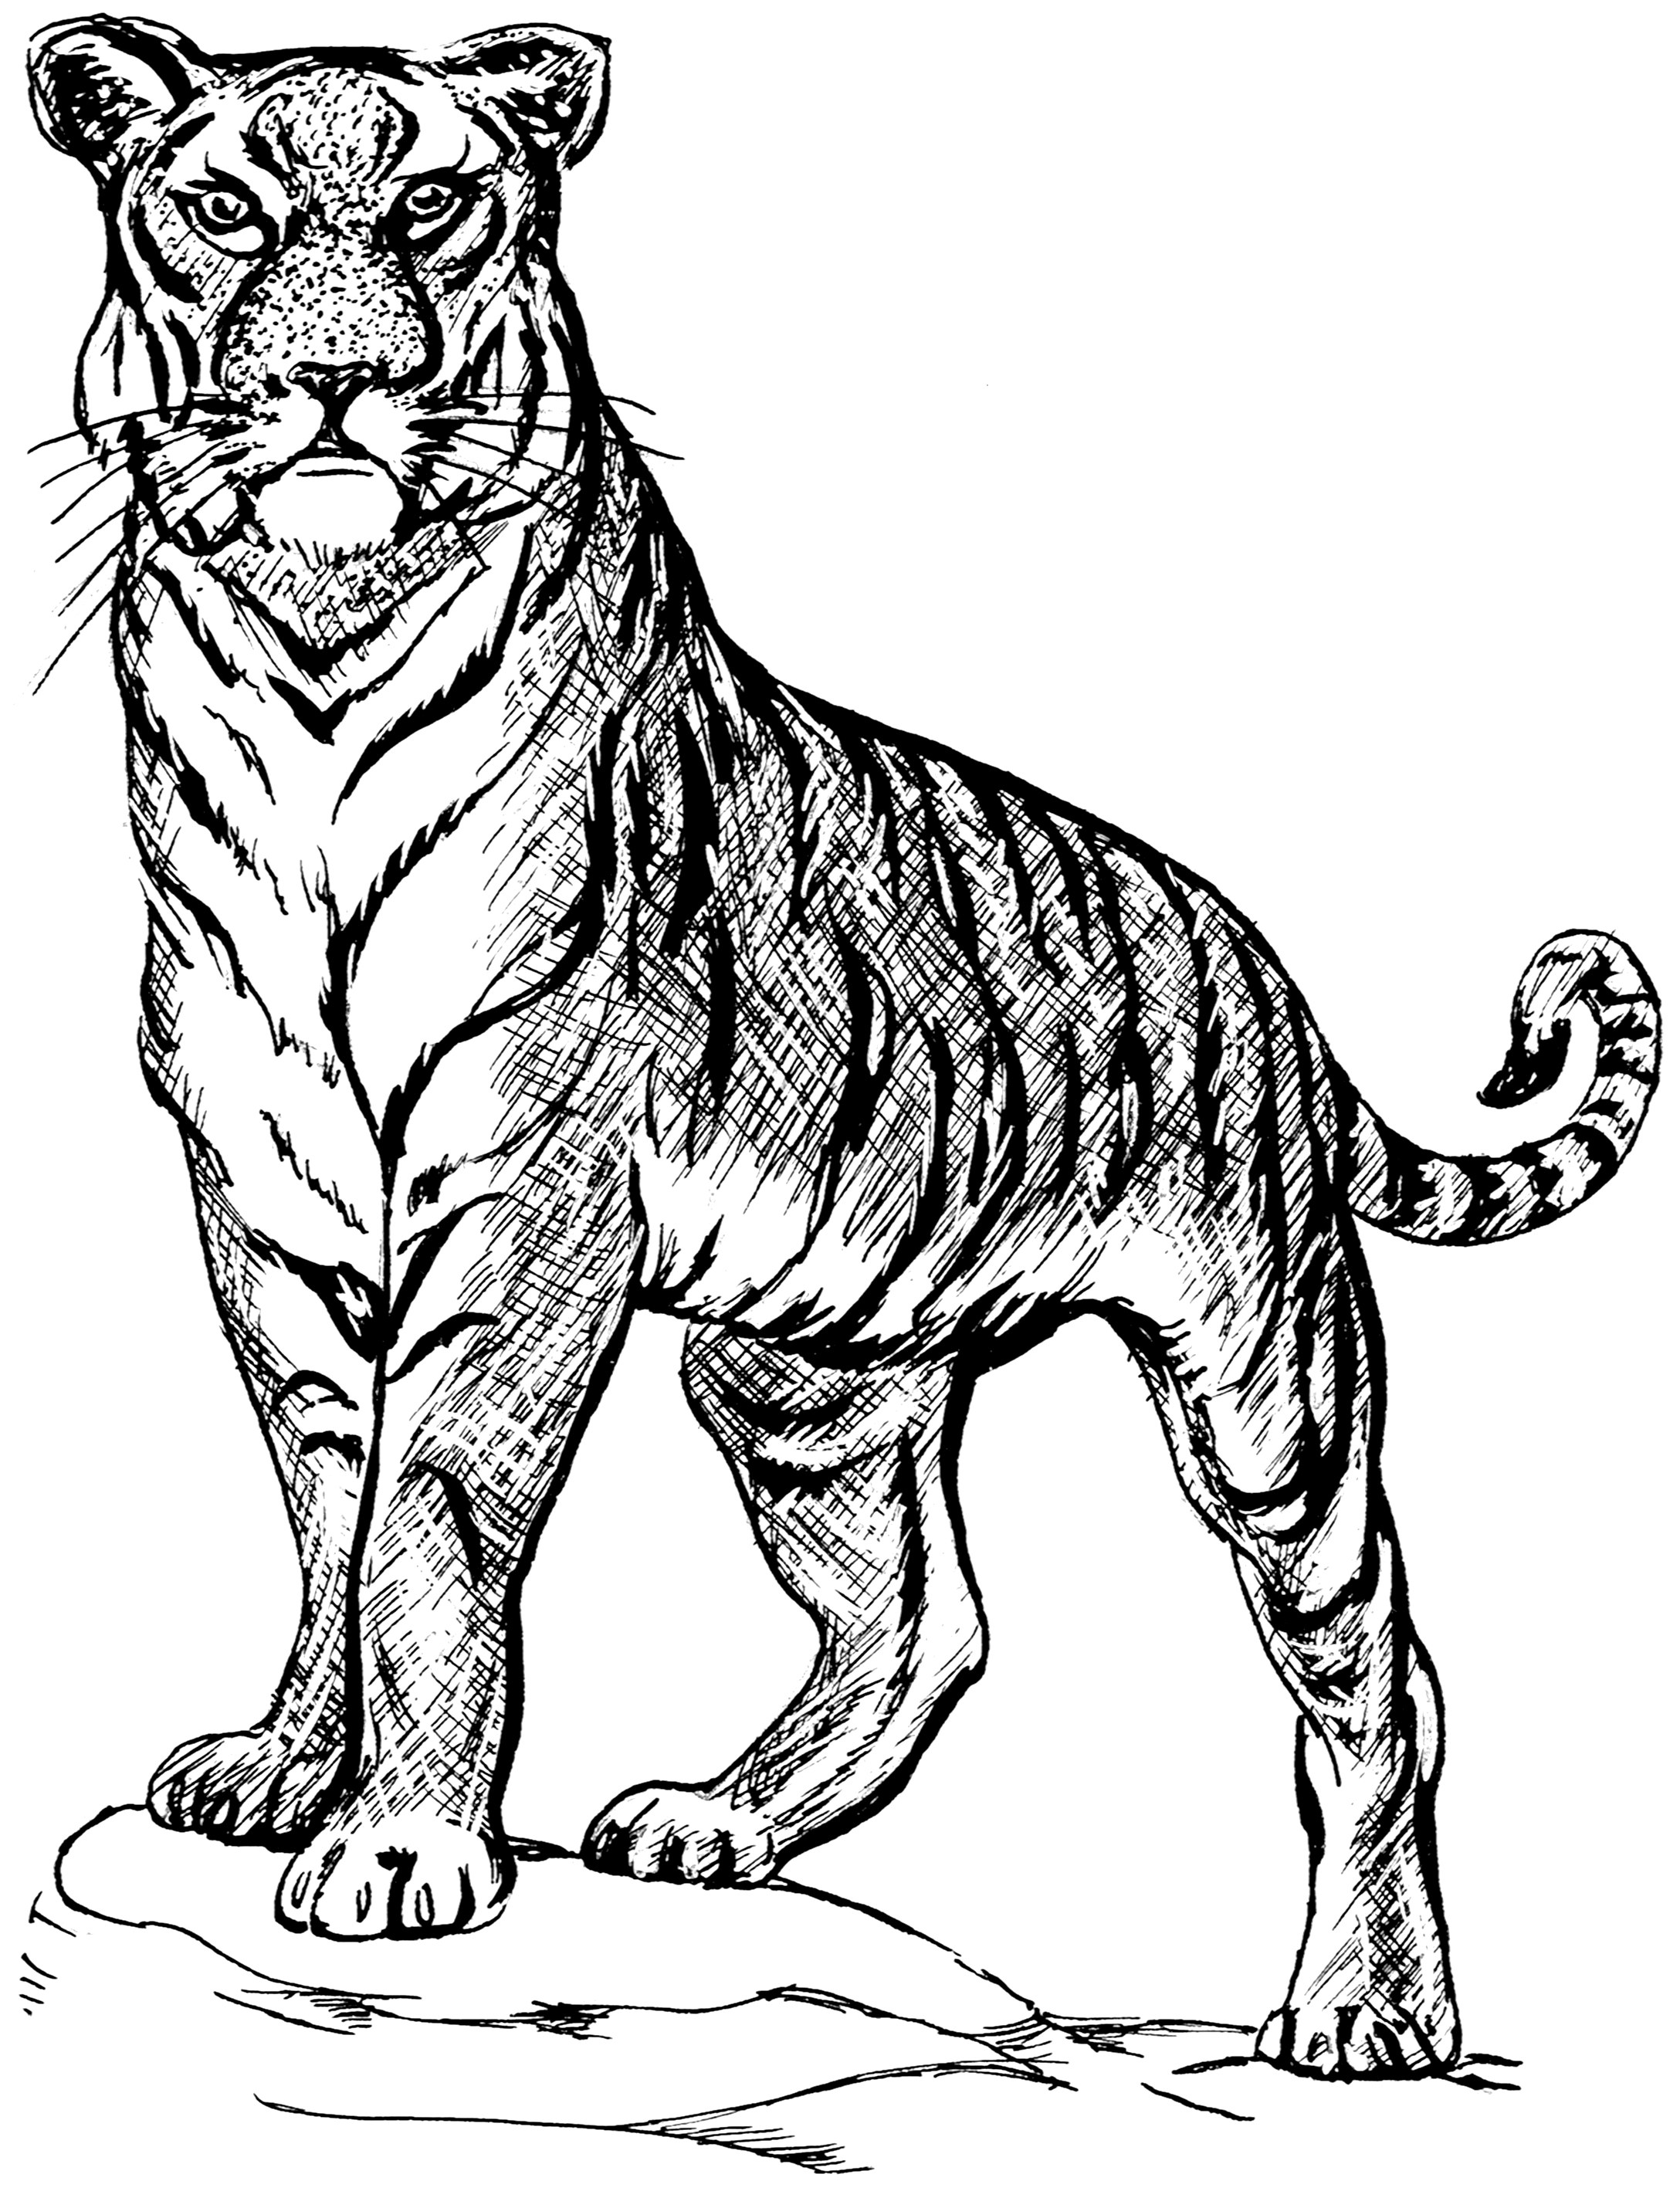 file tiger 3 psf png wikimedia commons